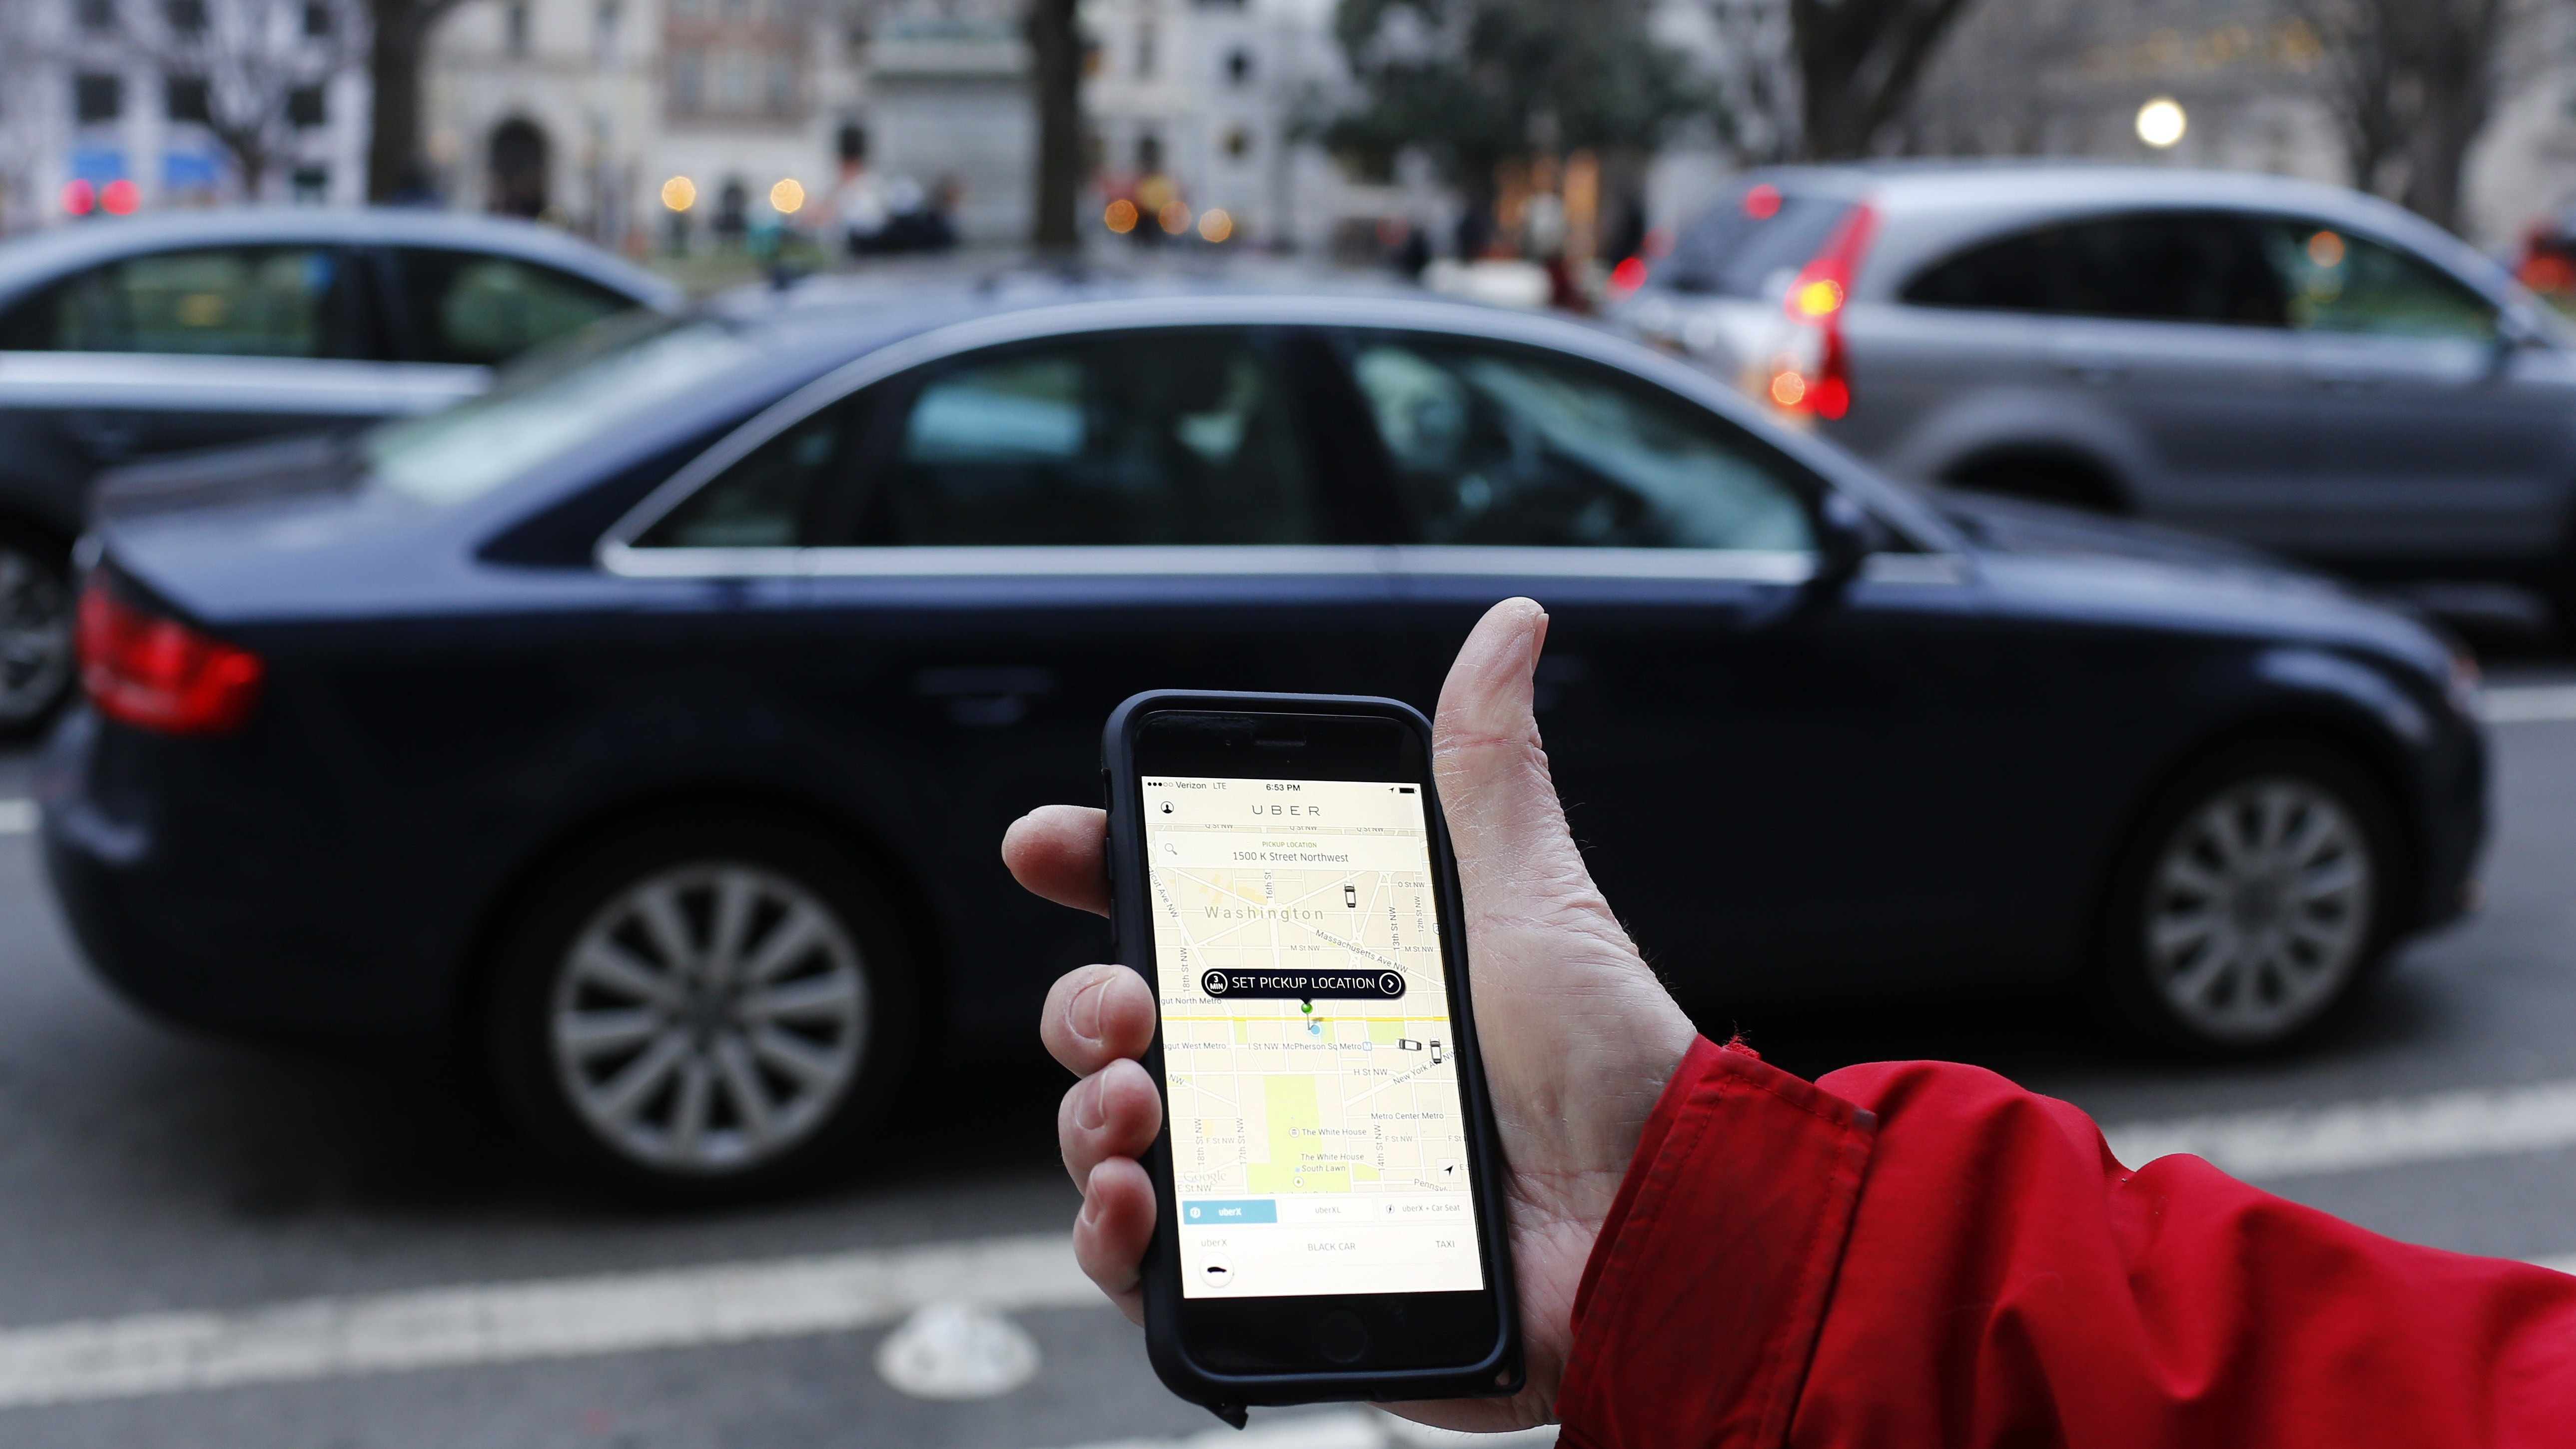 Uber and Lyft Shut Down in Austin After Losing Vote on Driver Background Checks